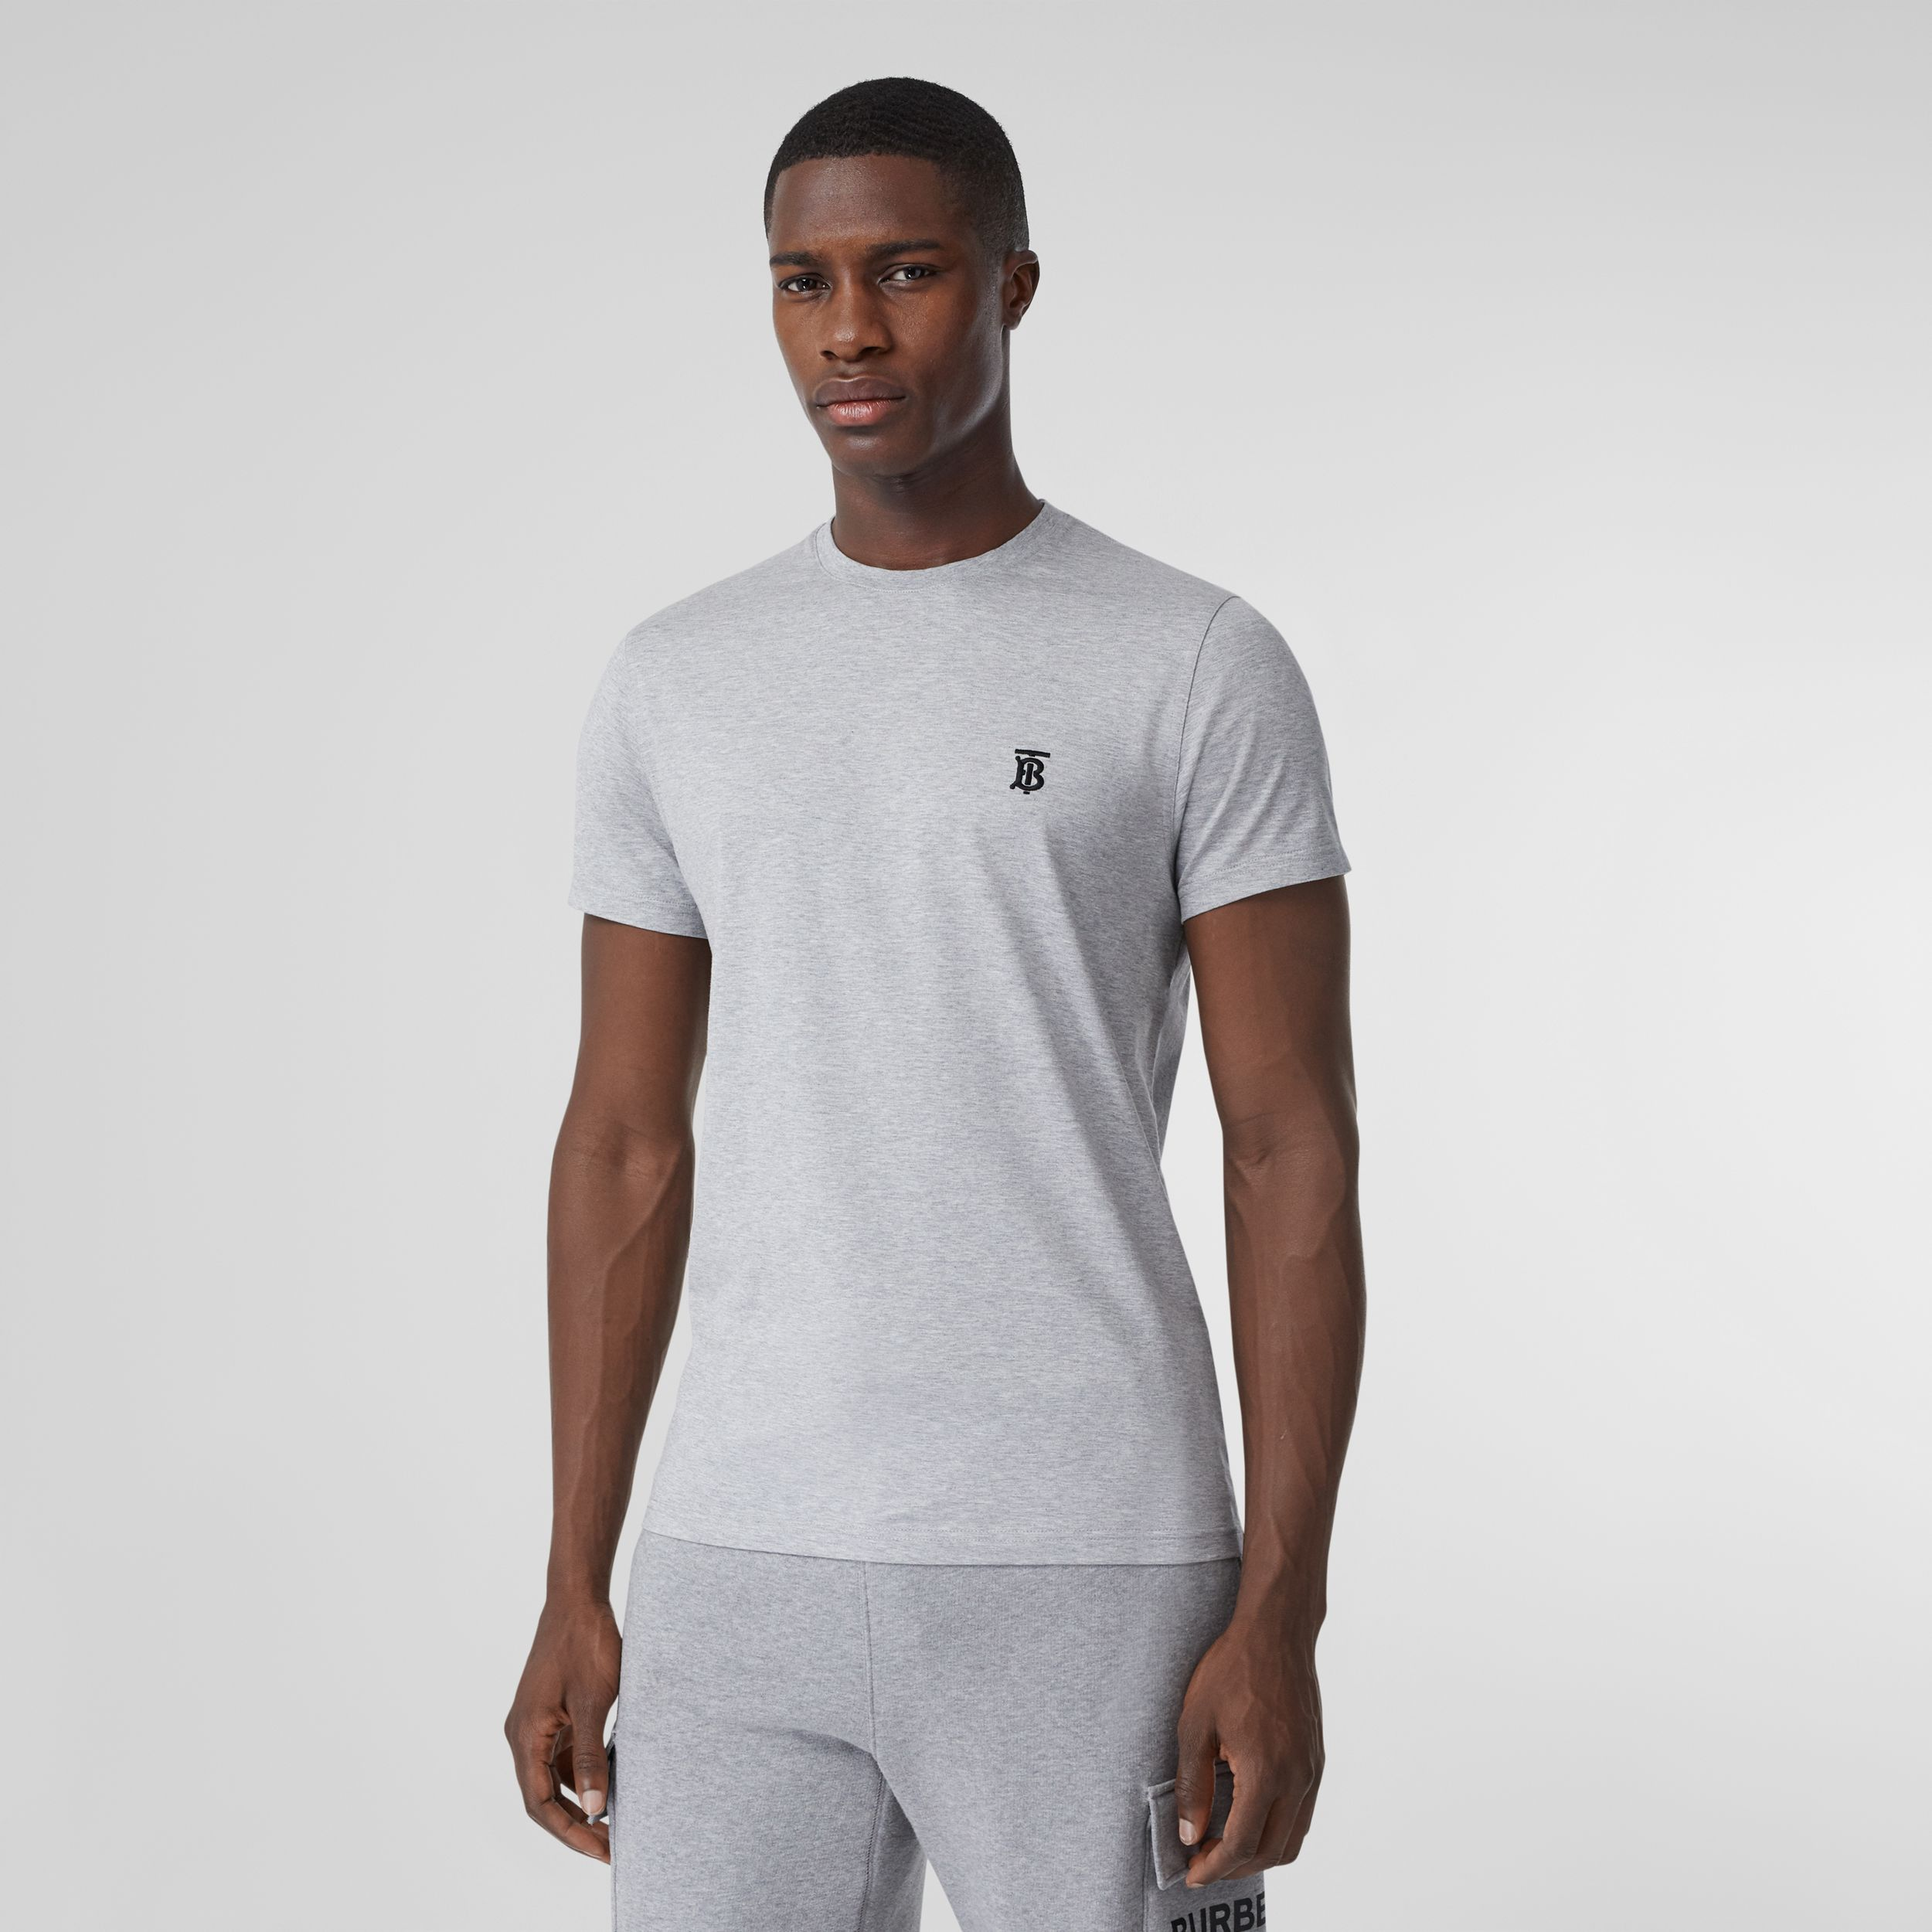 Monogram Motif Cotton T-shirt in Pale Grey Melange - Men | Burberry Australia - 1